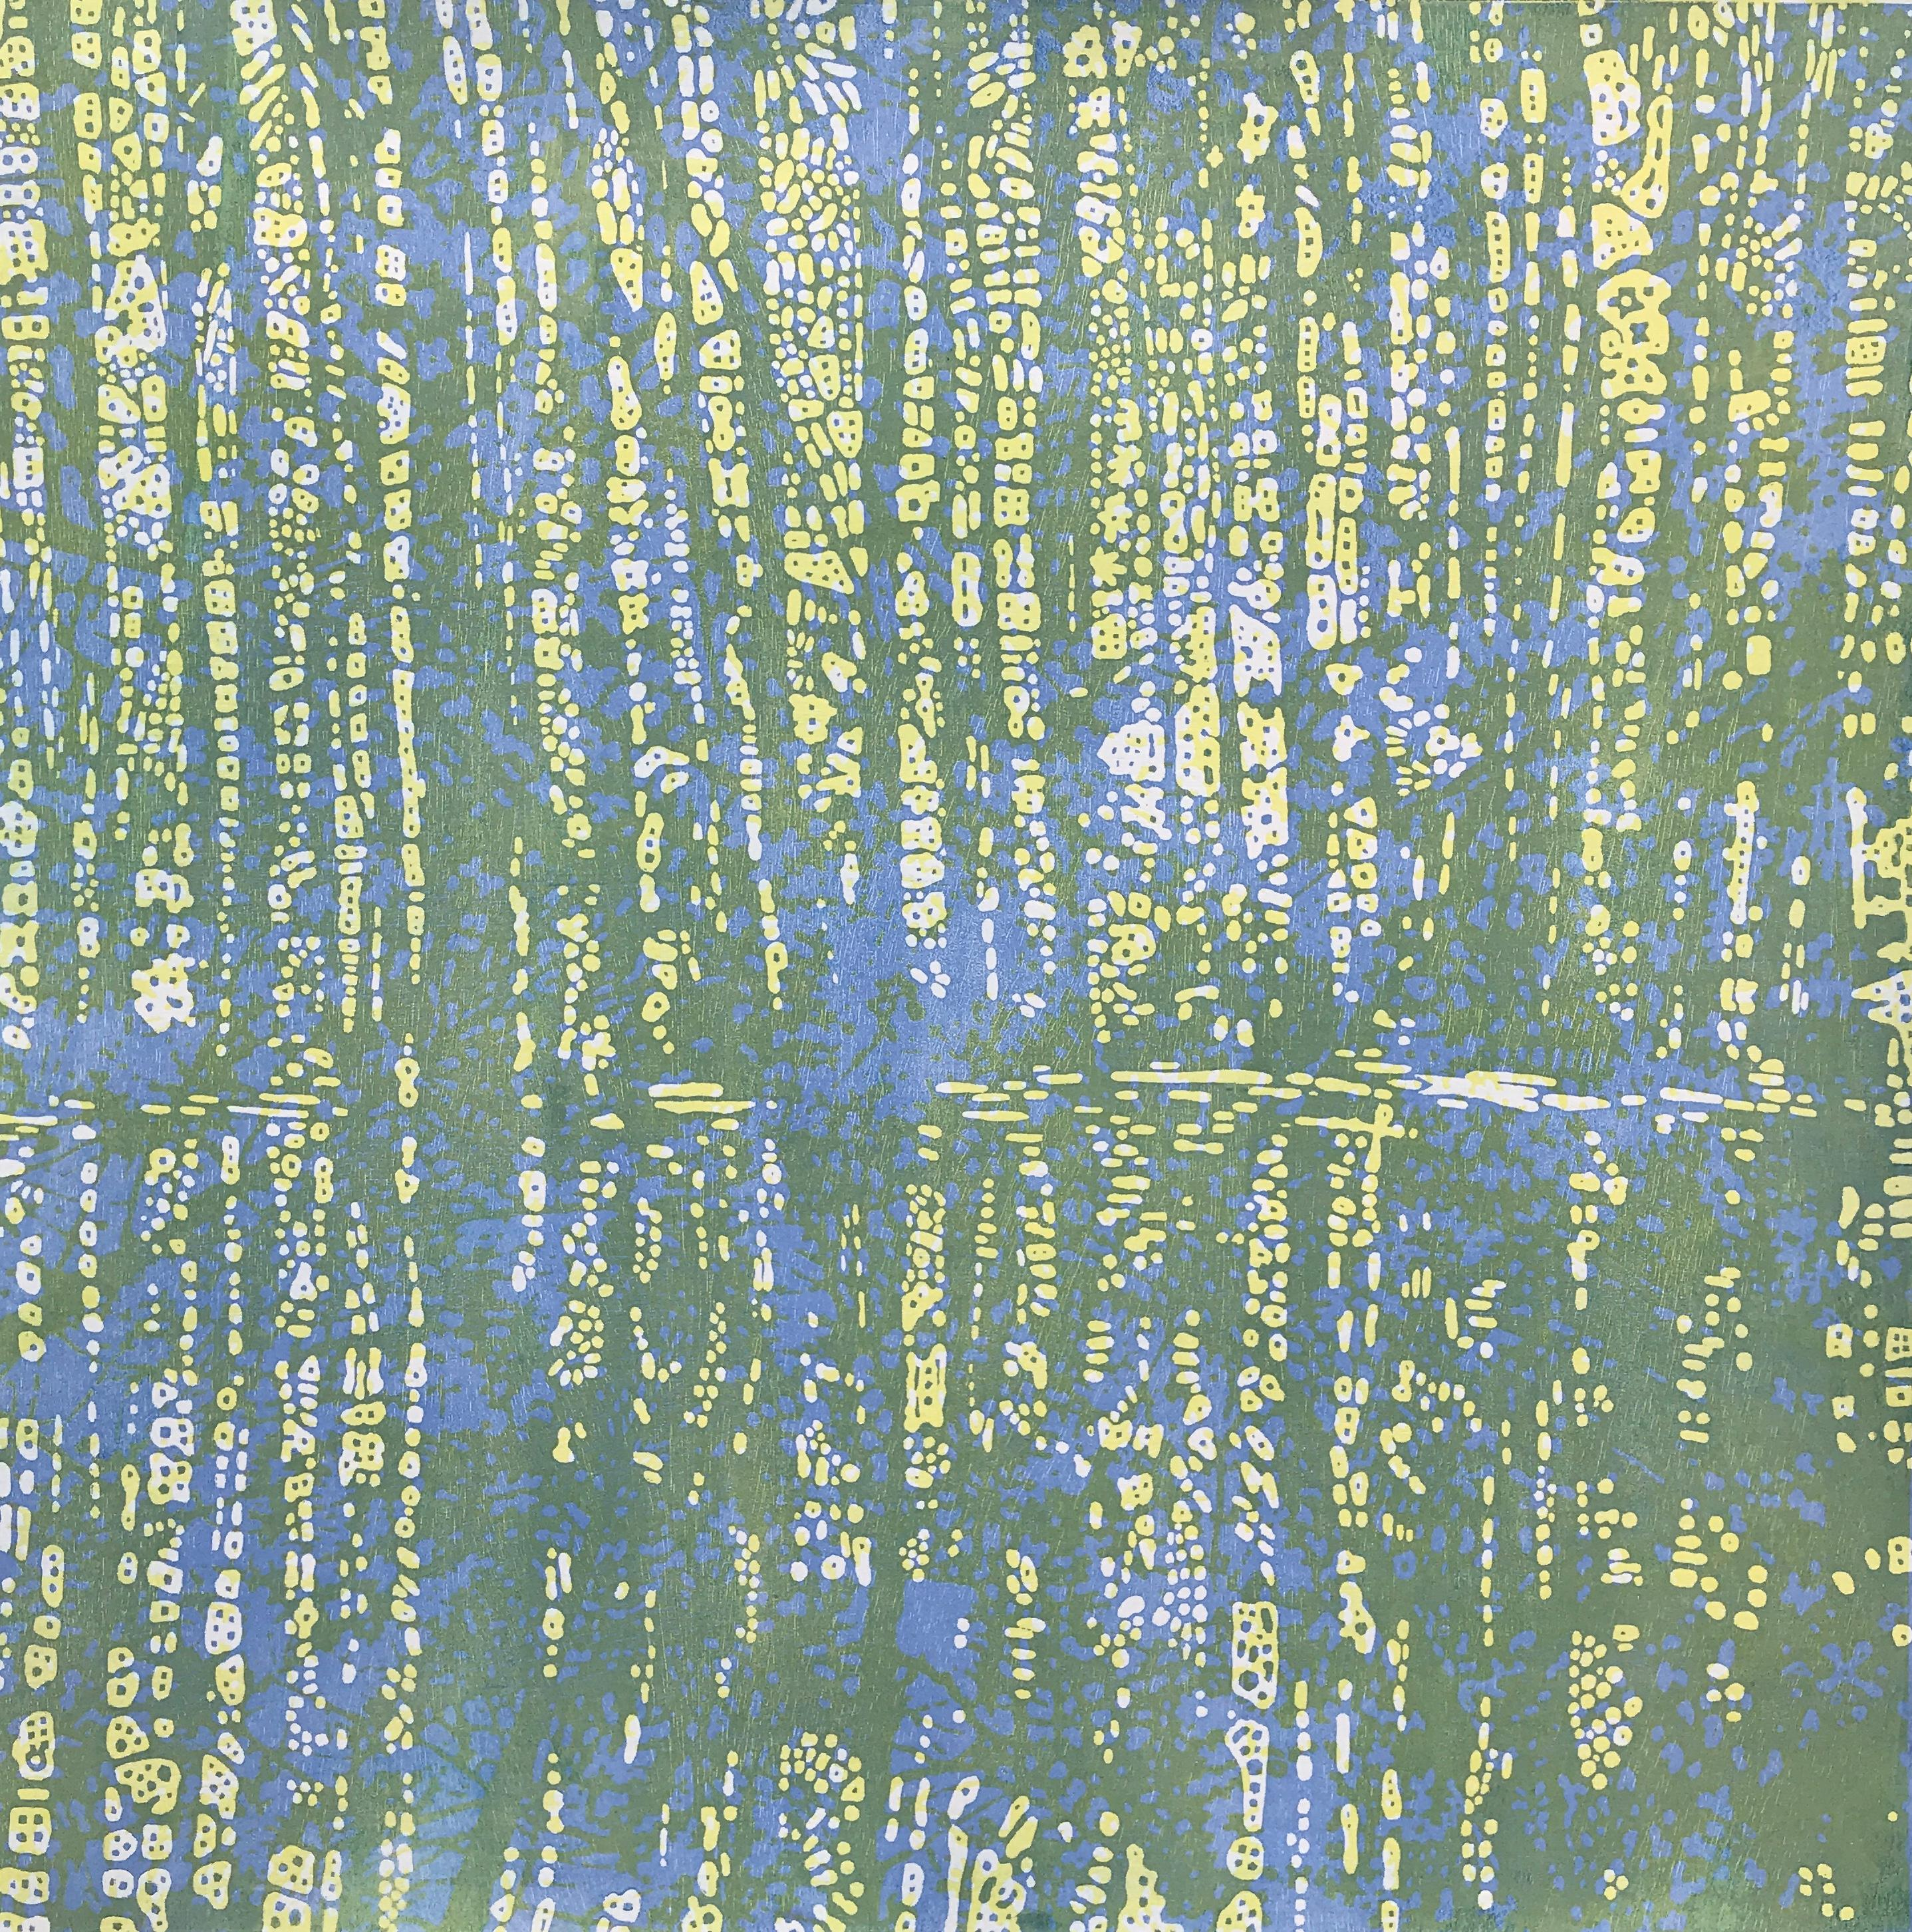 Woodland Landscape IX Eight, Woodcut Print of Forest in Light Blue, Pale Yellow